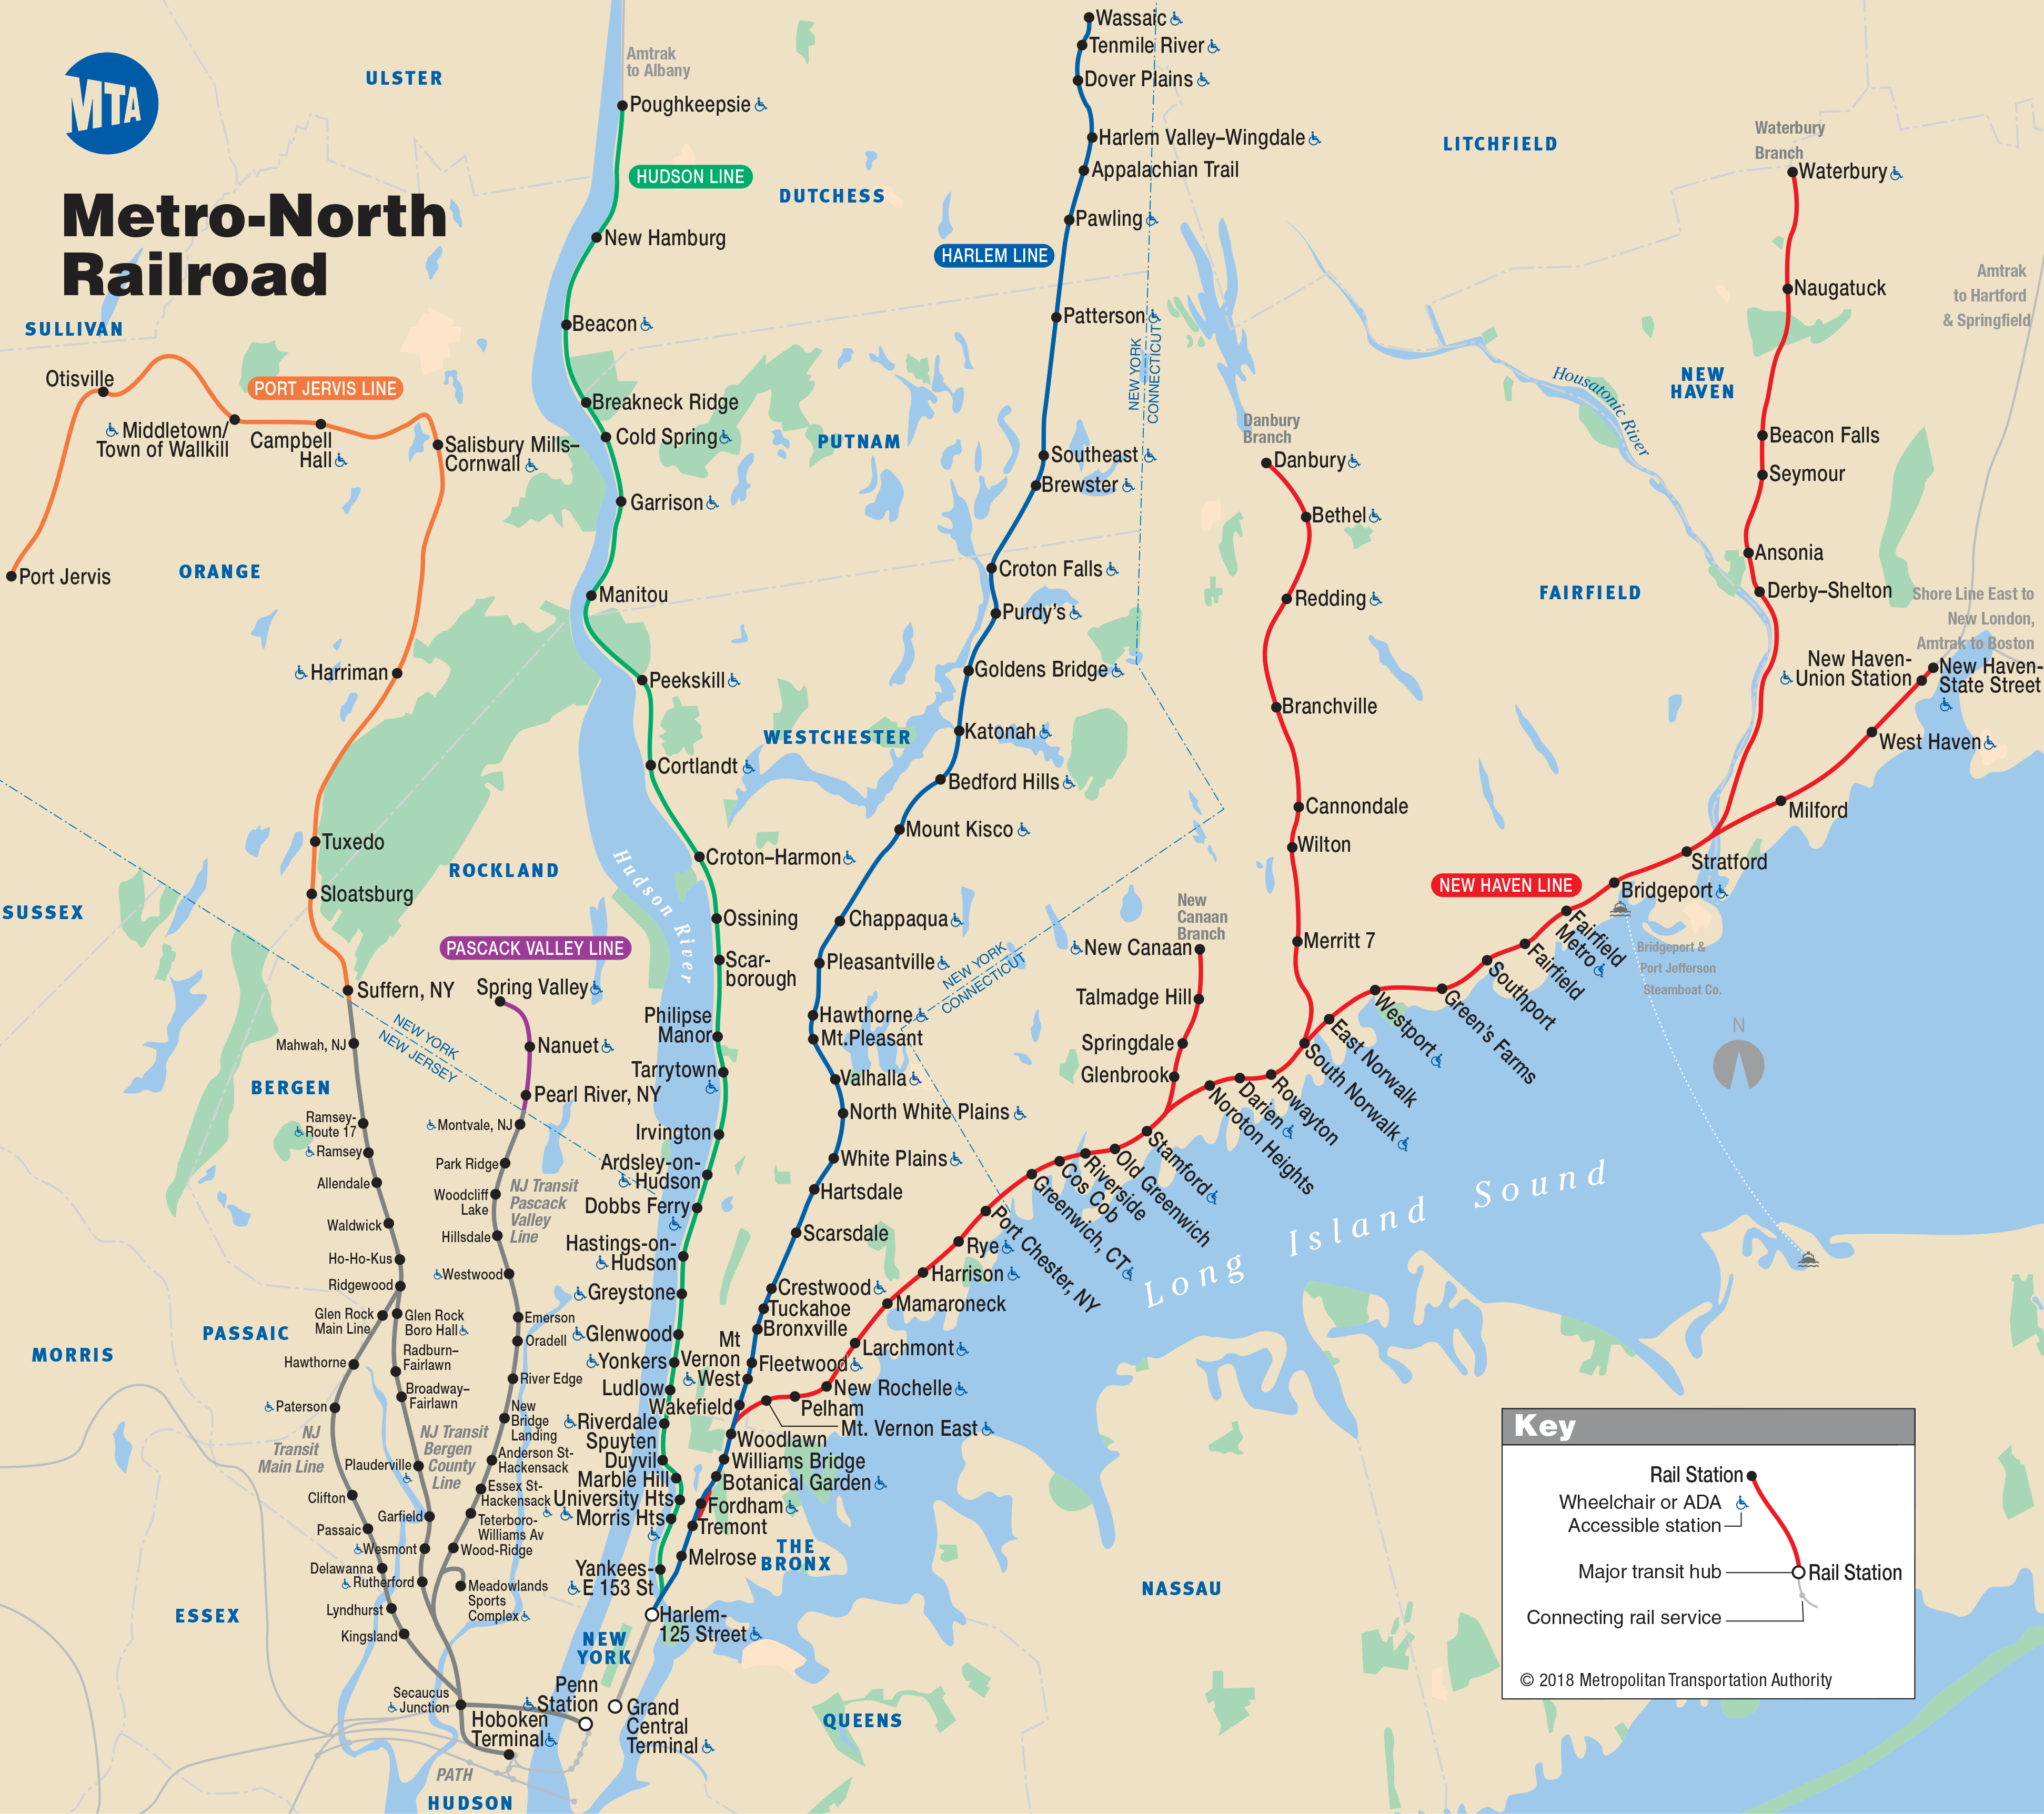 Map Of New York Rail System.Nyc Metro Bus And Railway System Website New York D C Metro